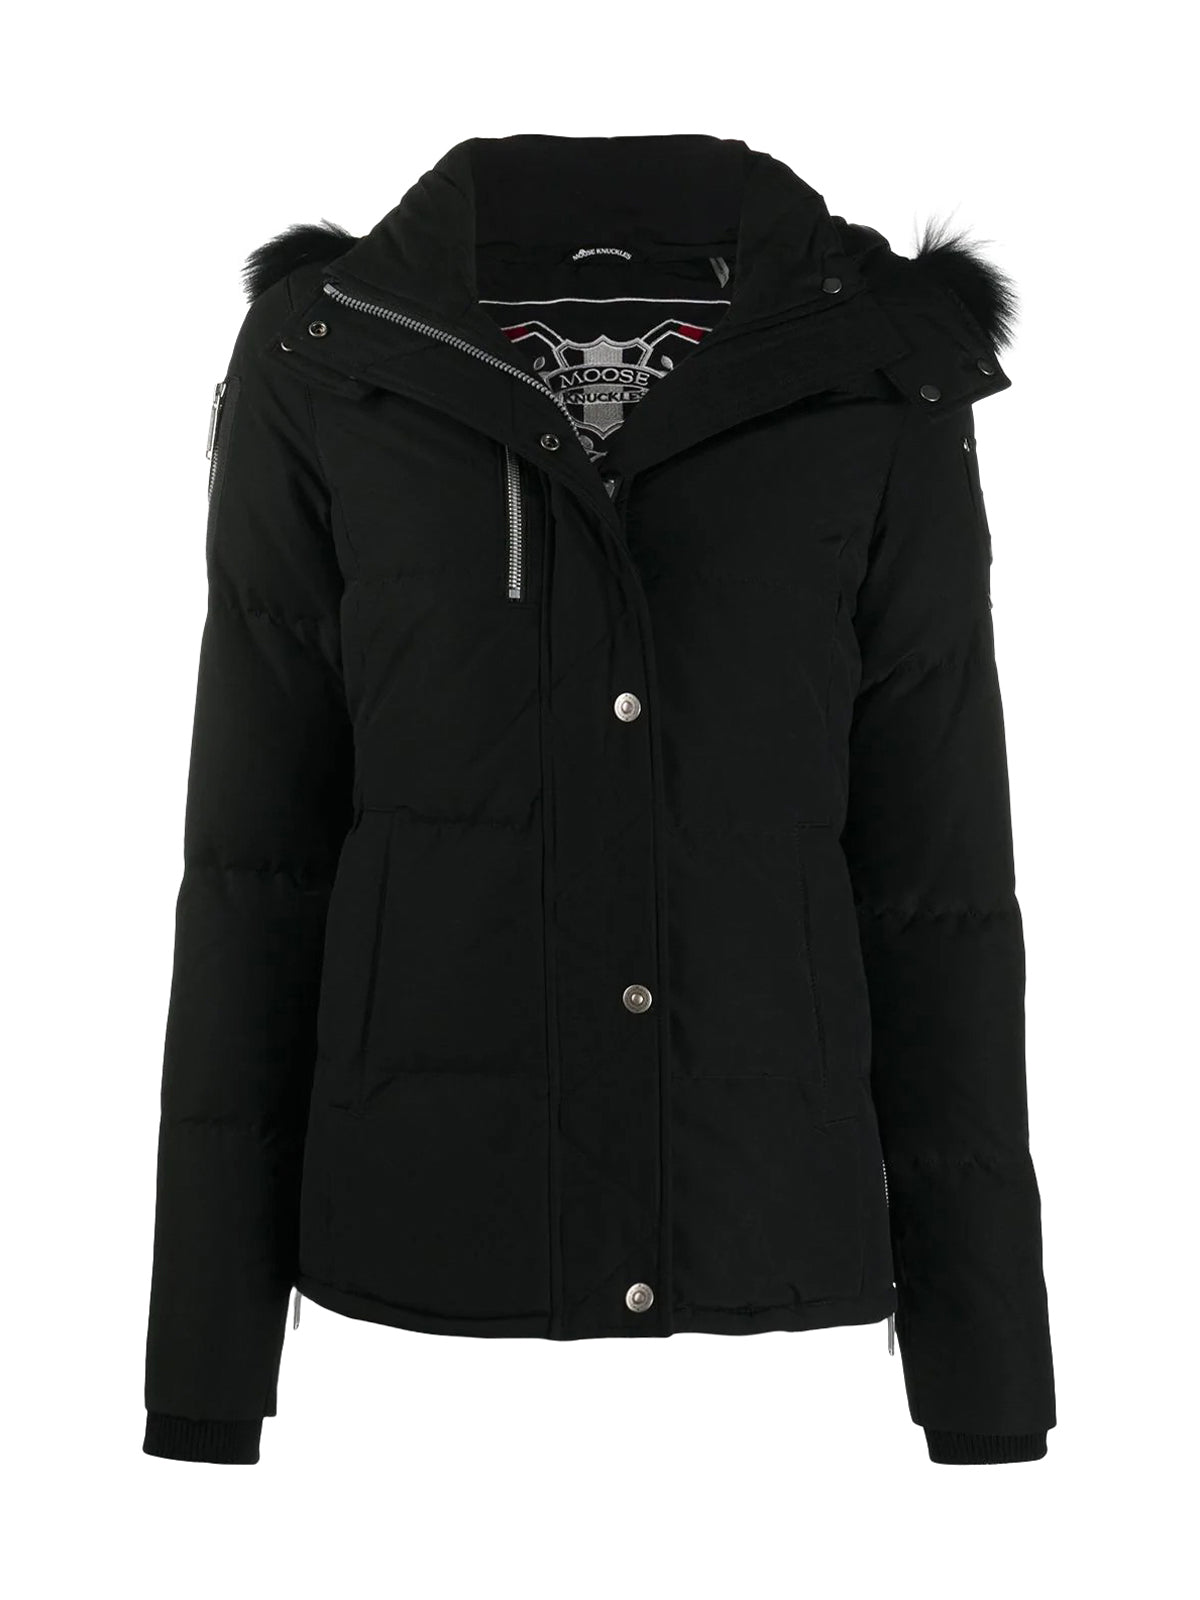 RATHNELLY JACKET